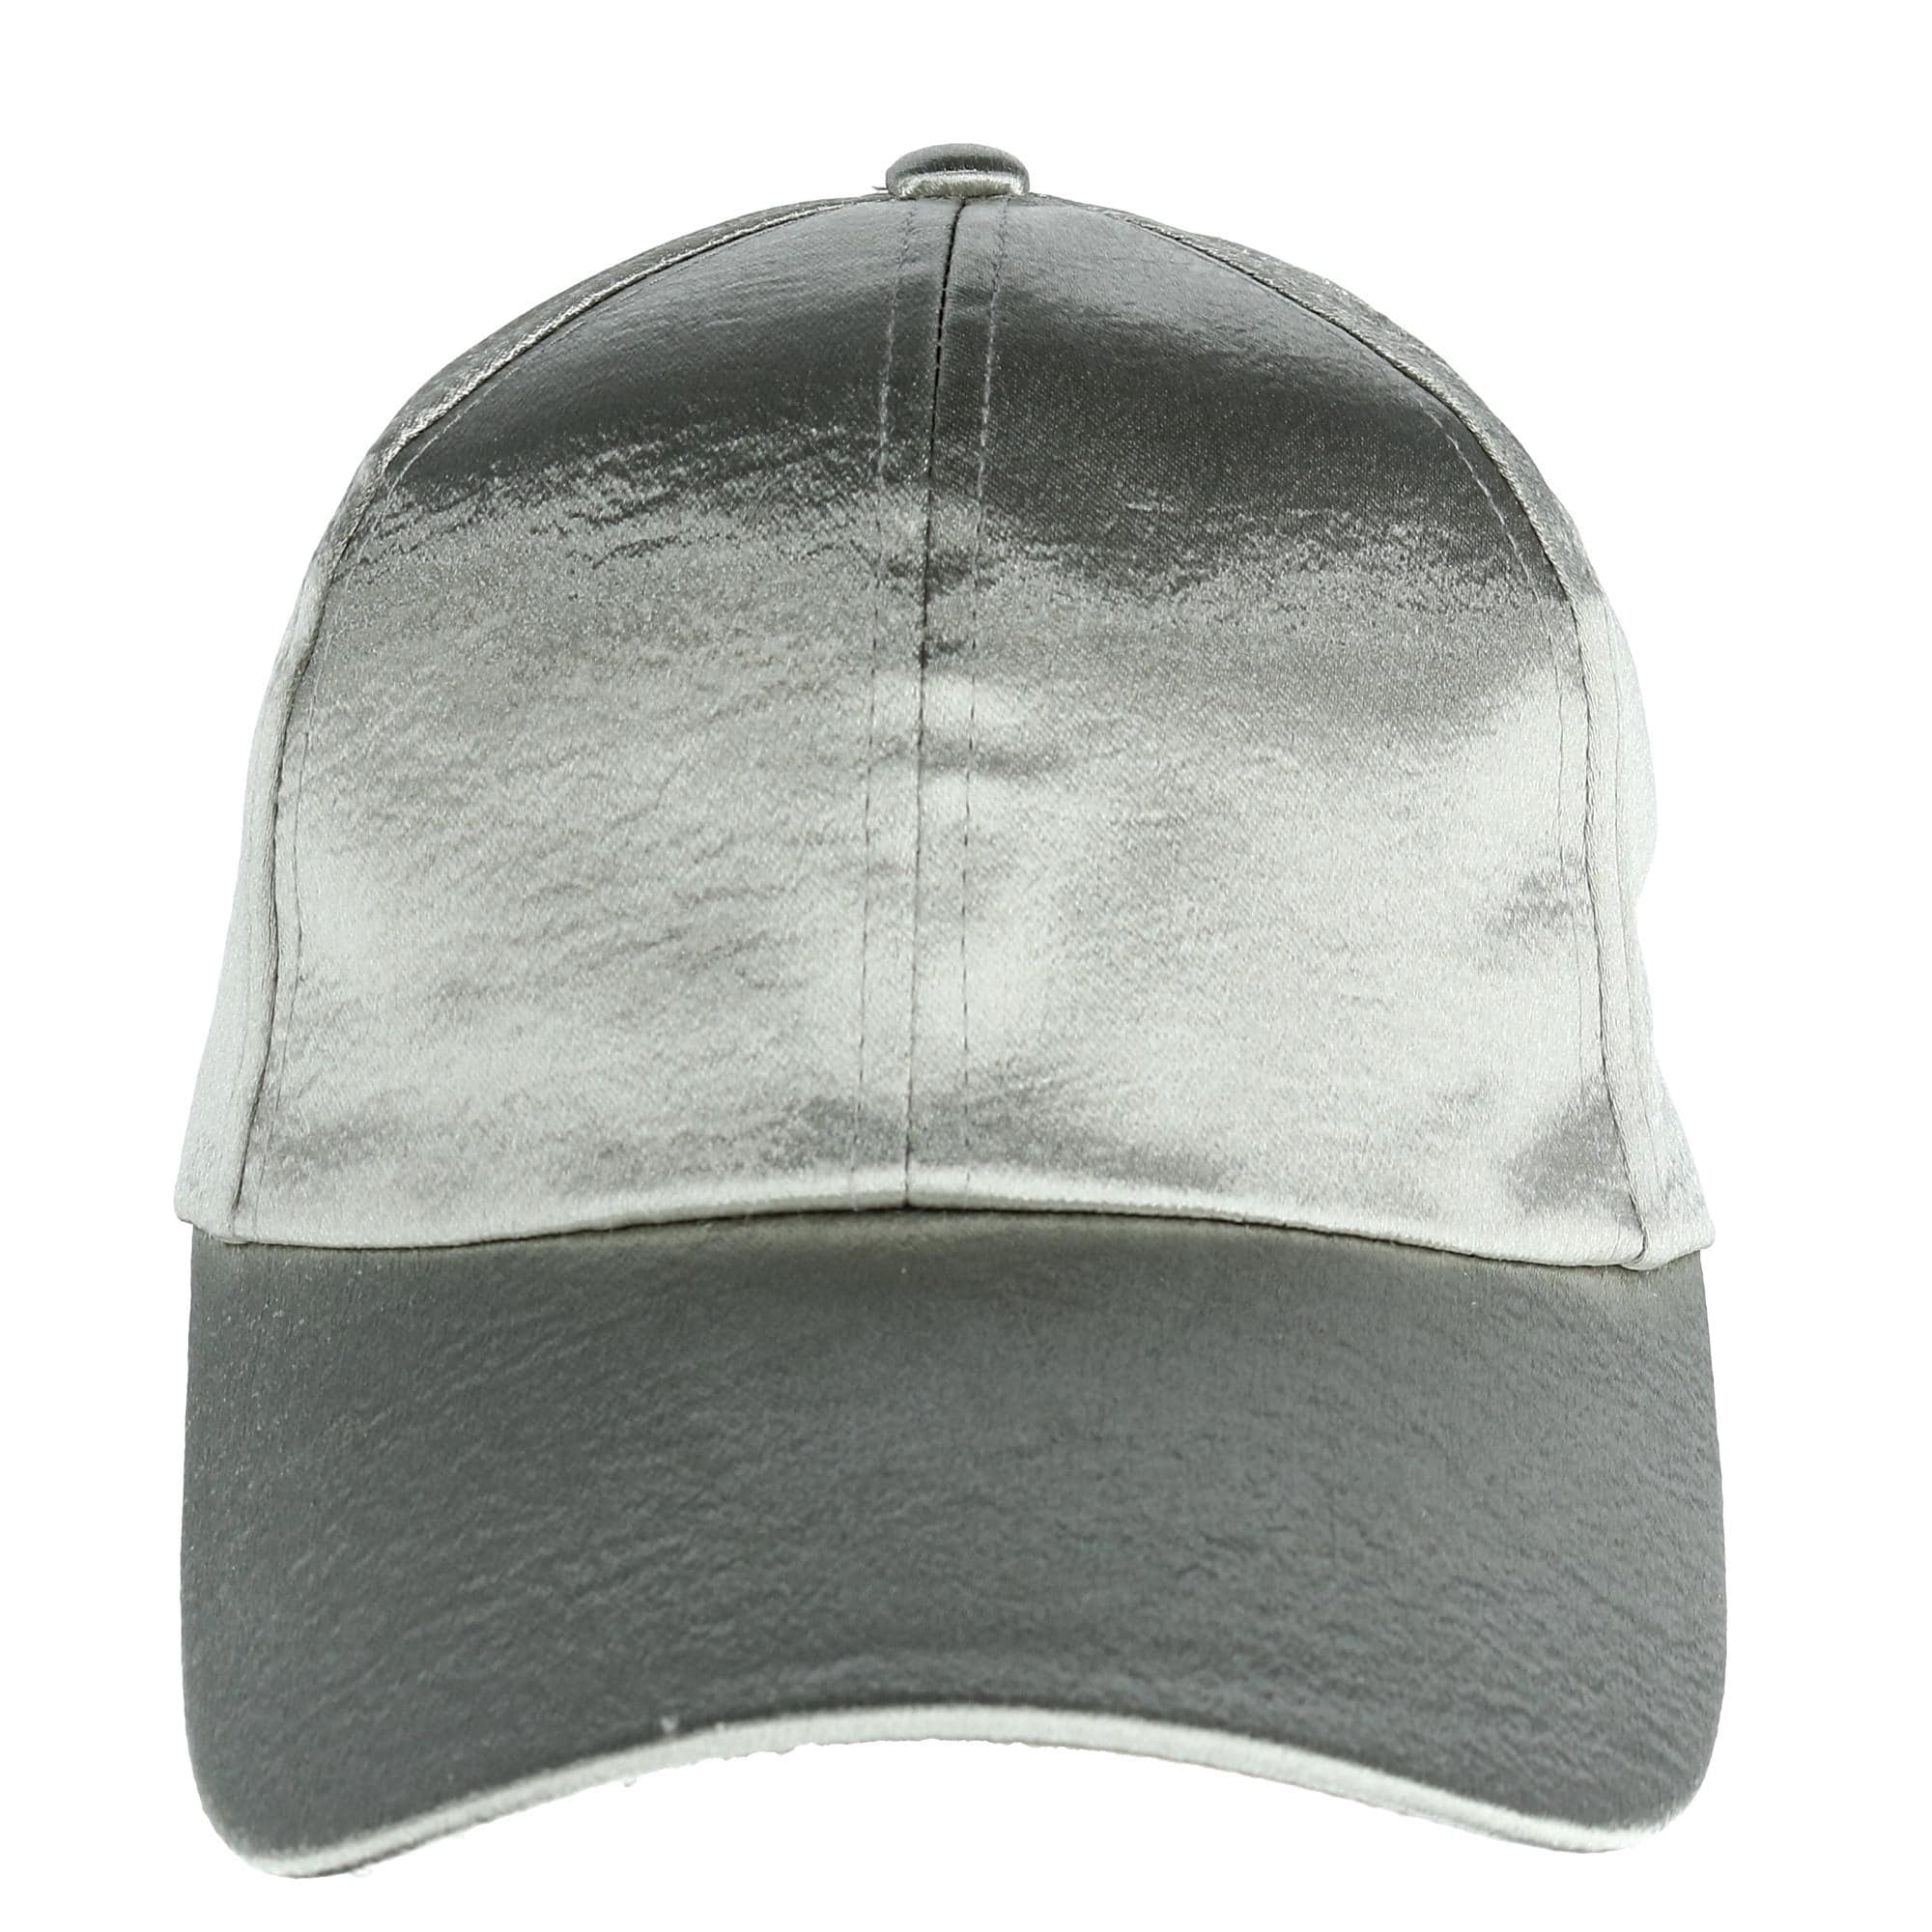 Shop CTM® Women s Textured Satin Baseball Cap - Free Shipping On Orders  Over  45 - Overstock - 23600776 1b7cee6124eb